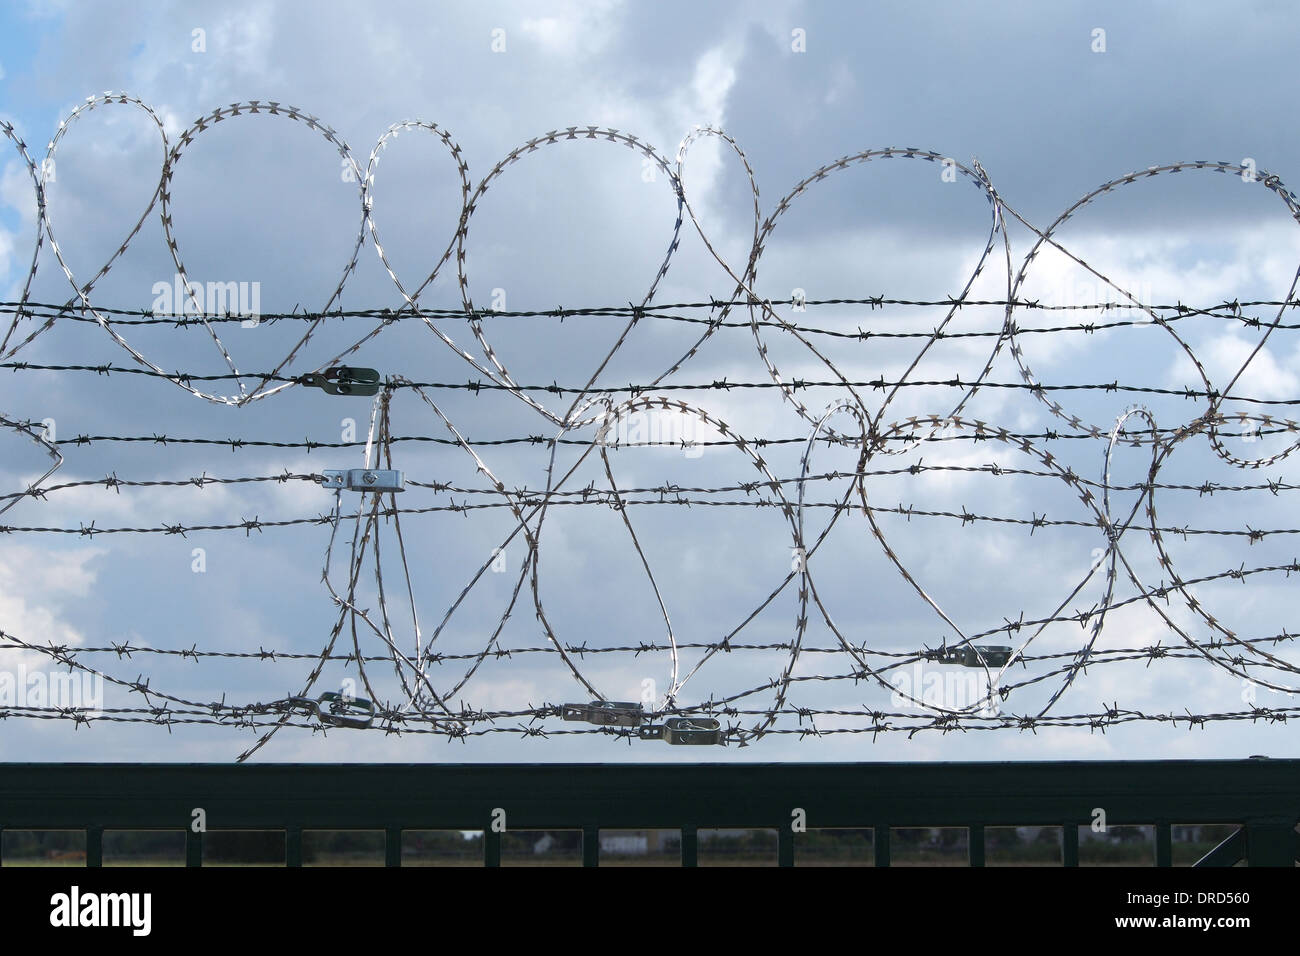 Restricted area - fence with barbed wire - Stock Image